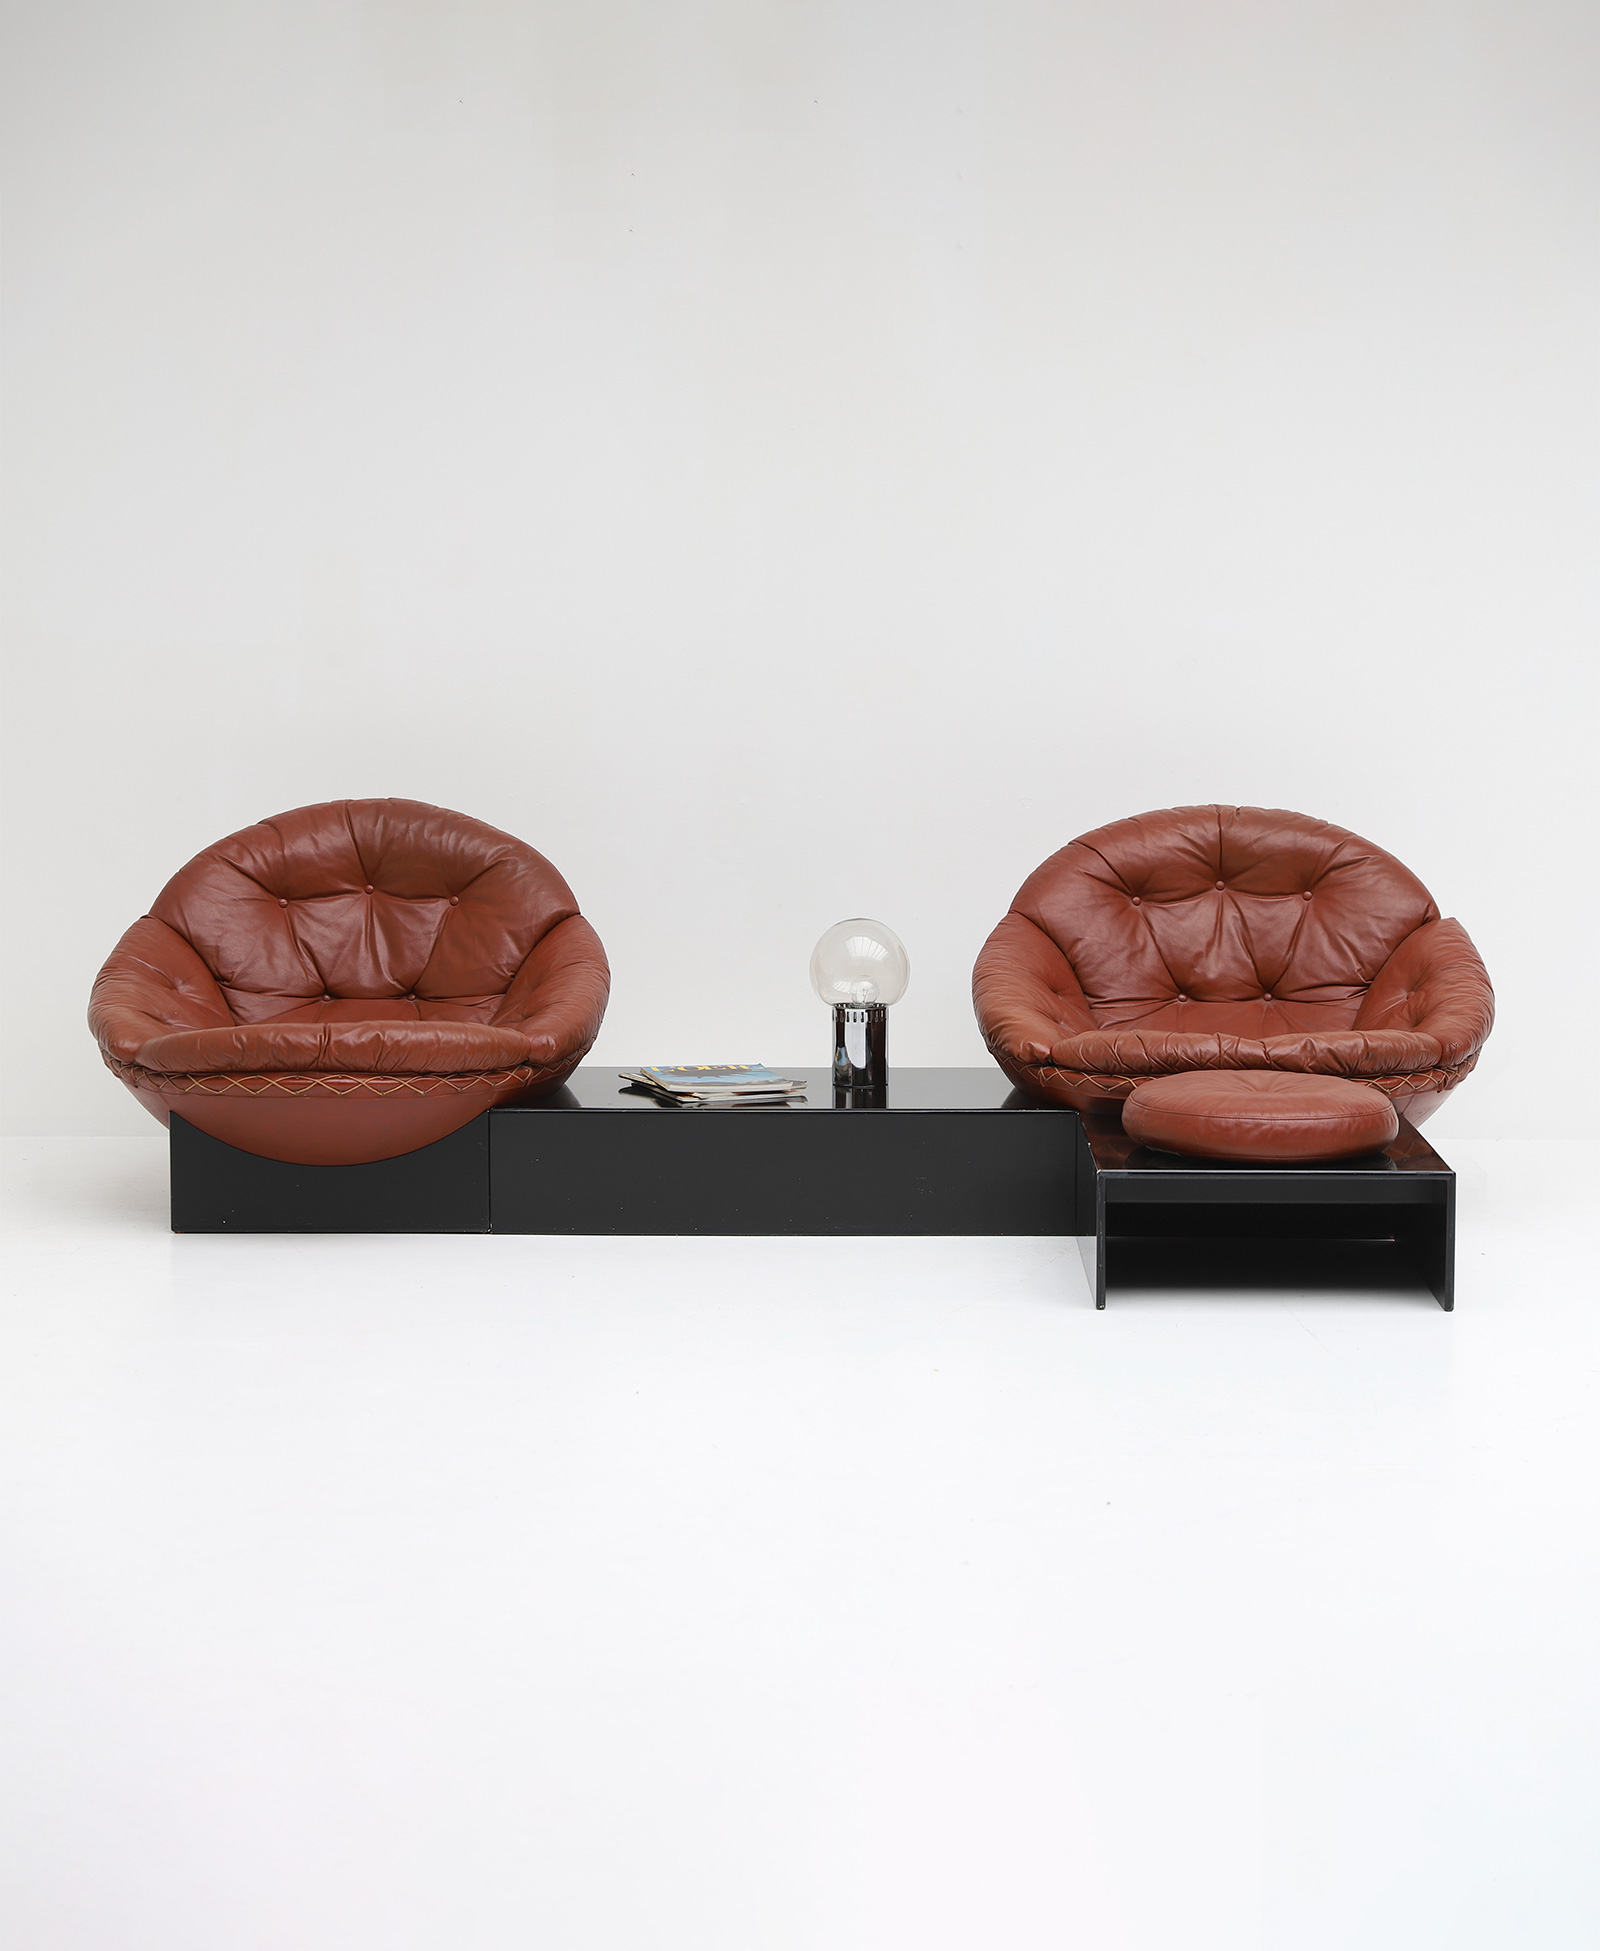 Leather Lounge Chairs by Illum Wikkelso for Ryesberg 1970simage 1